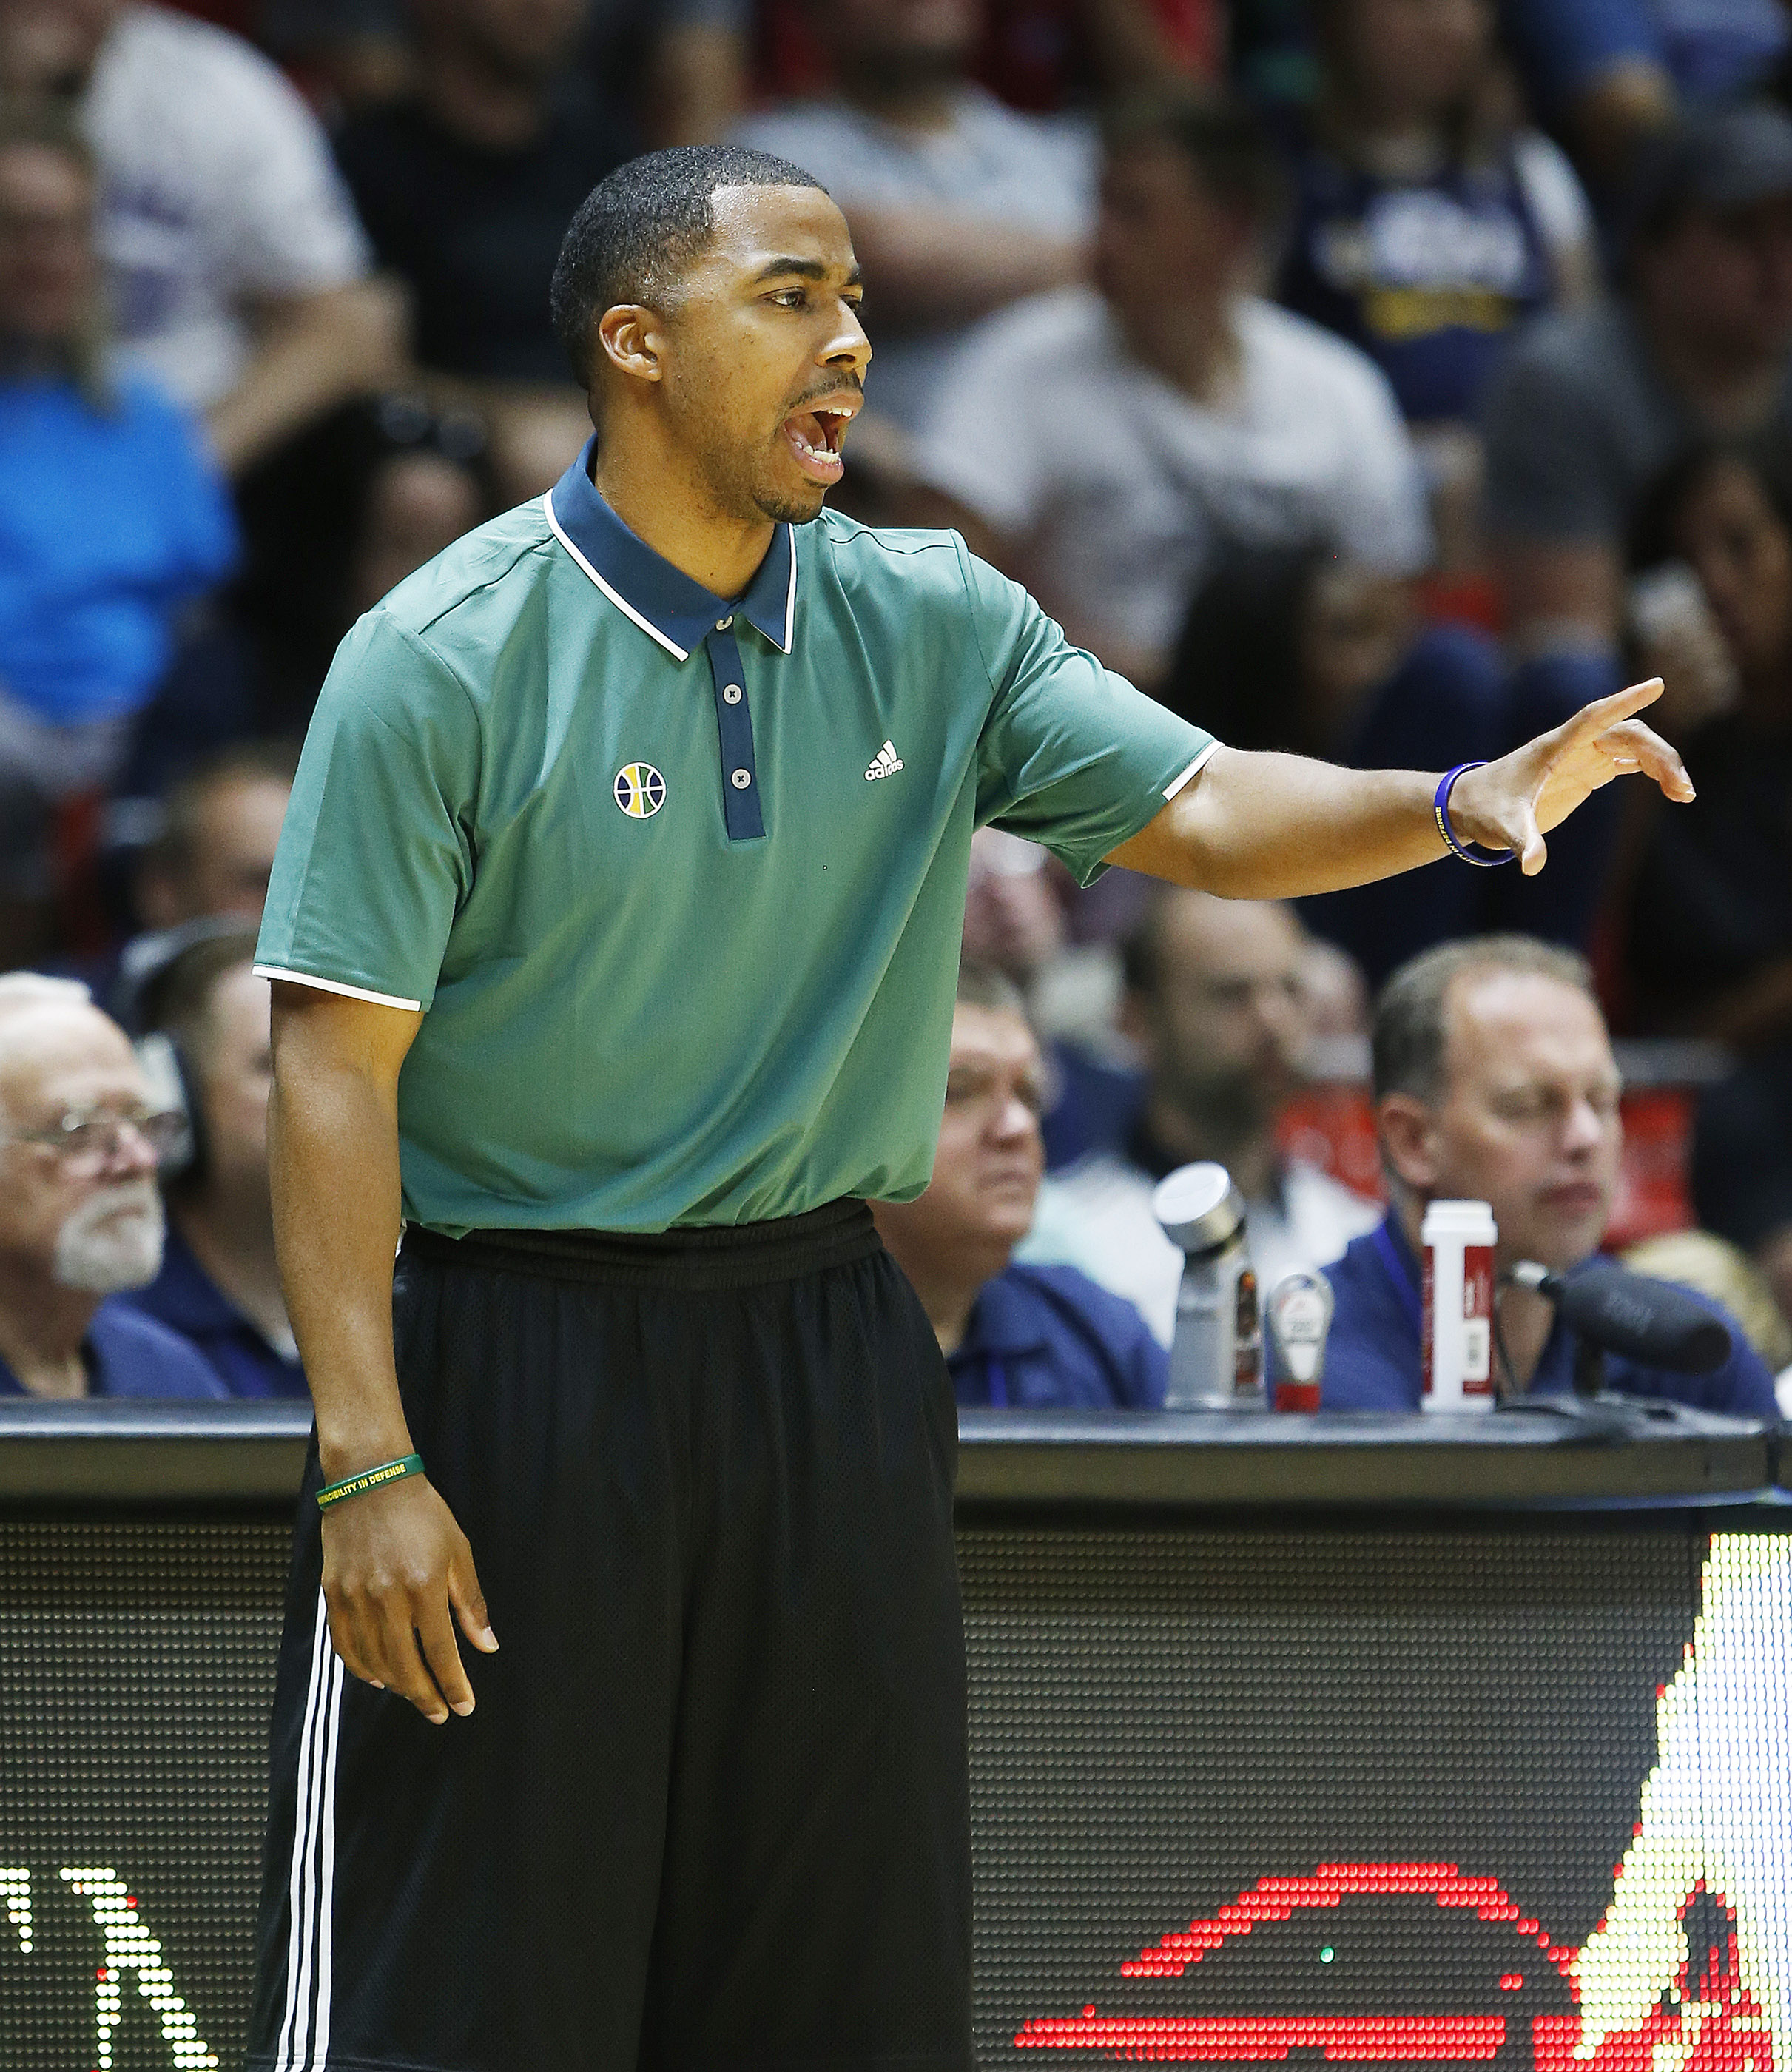 Utah Jazz coach Johnnie Bryant shouts instruction during the summer league game in Salt Lake City on Thursday, July 7, 2016.